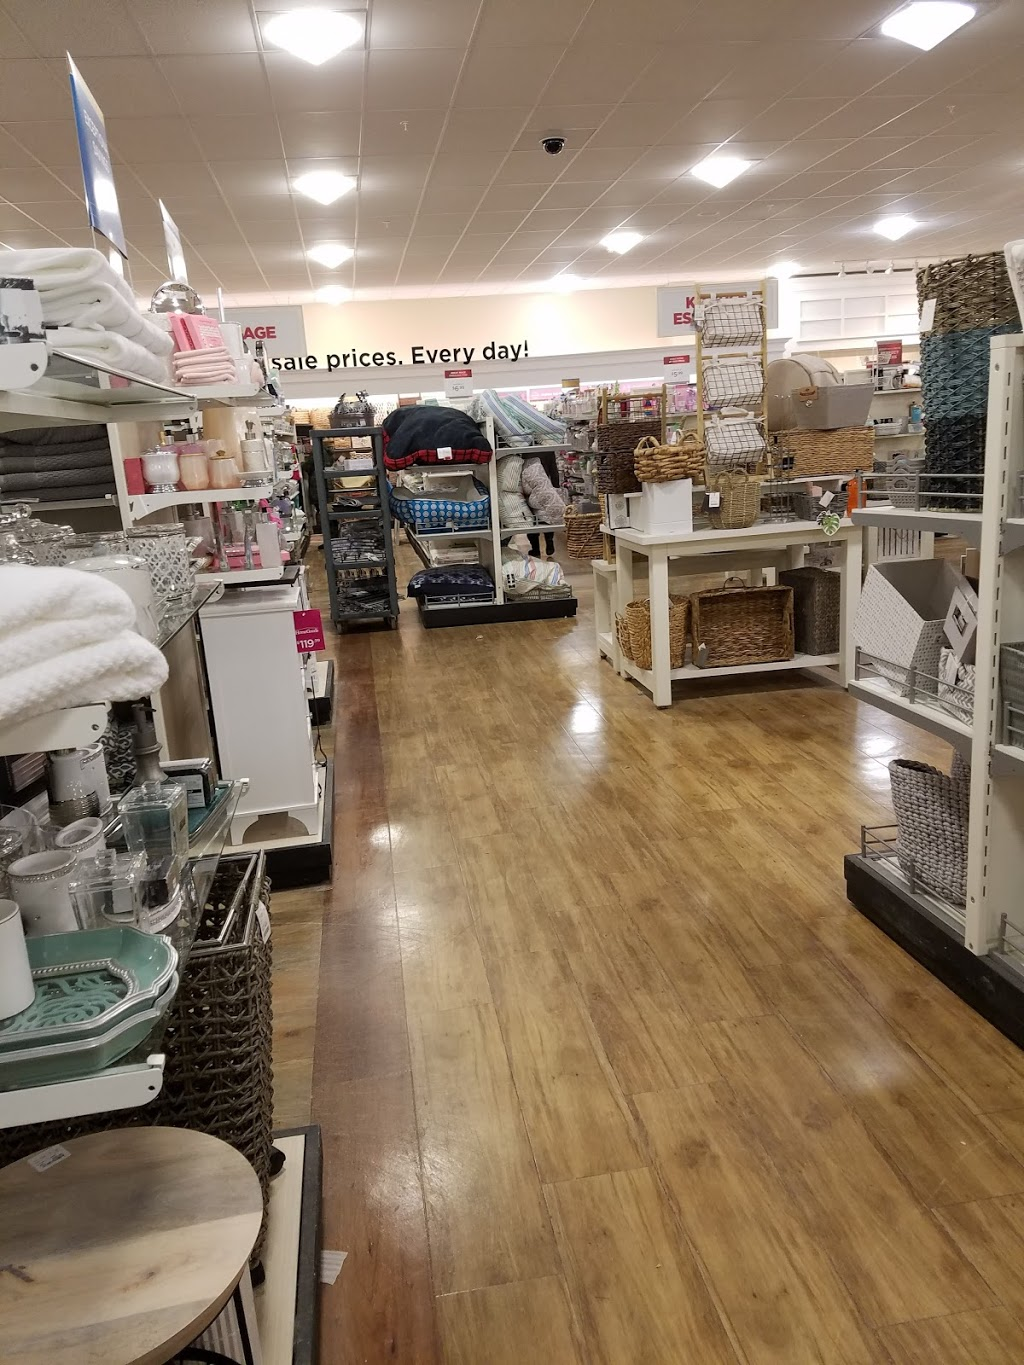 HomeGoods   department store   3480 Amelia Dr, Orchard Park, NY 14127, USA   7168219271 OR +1 716-821-9271